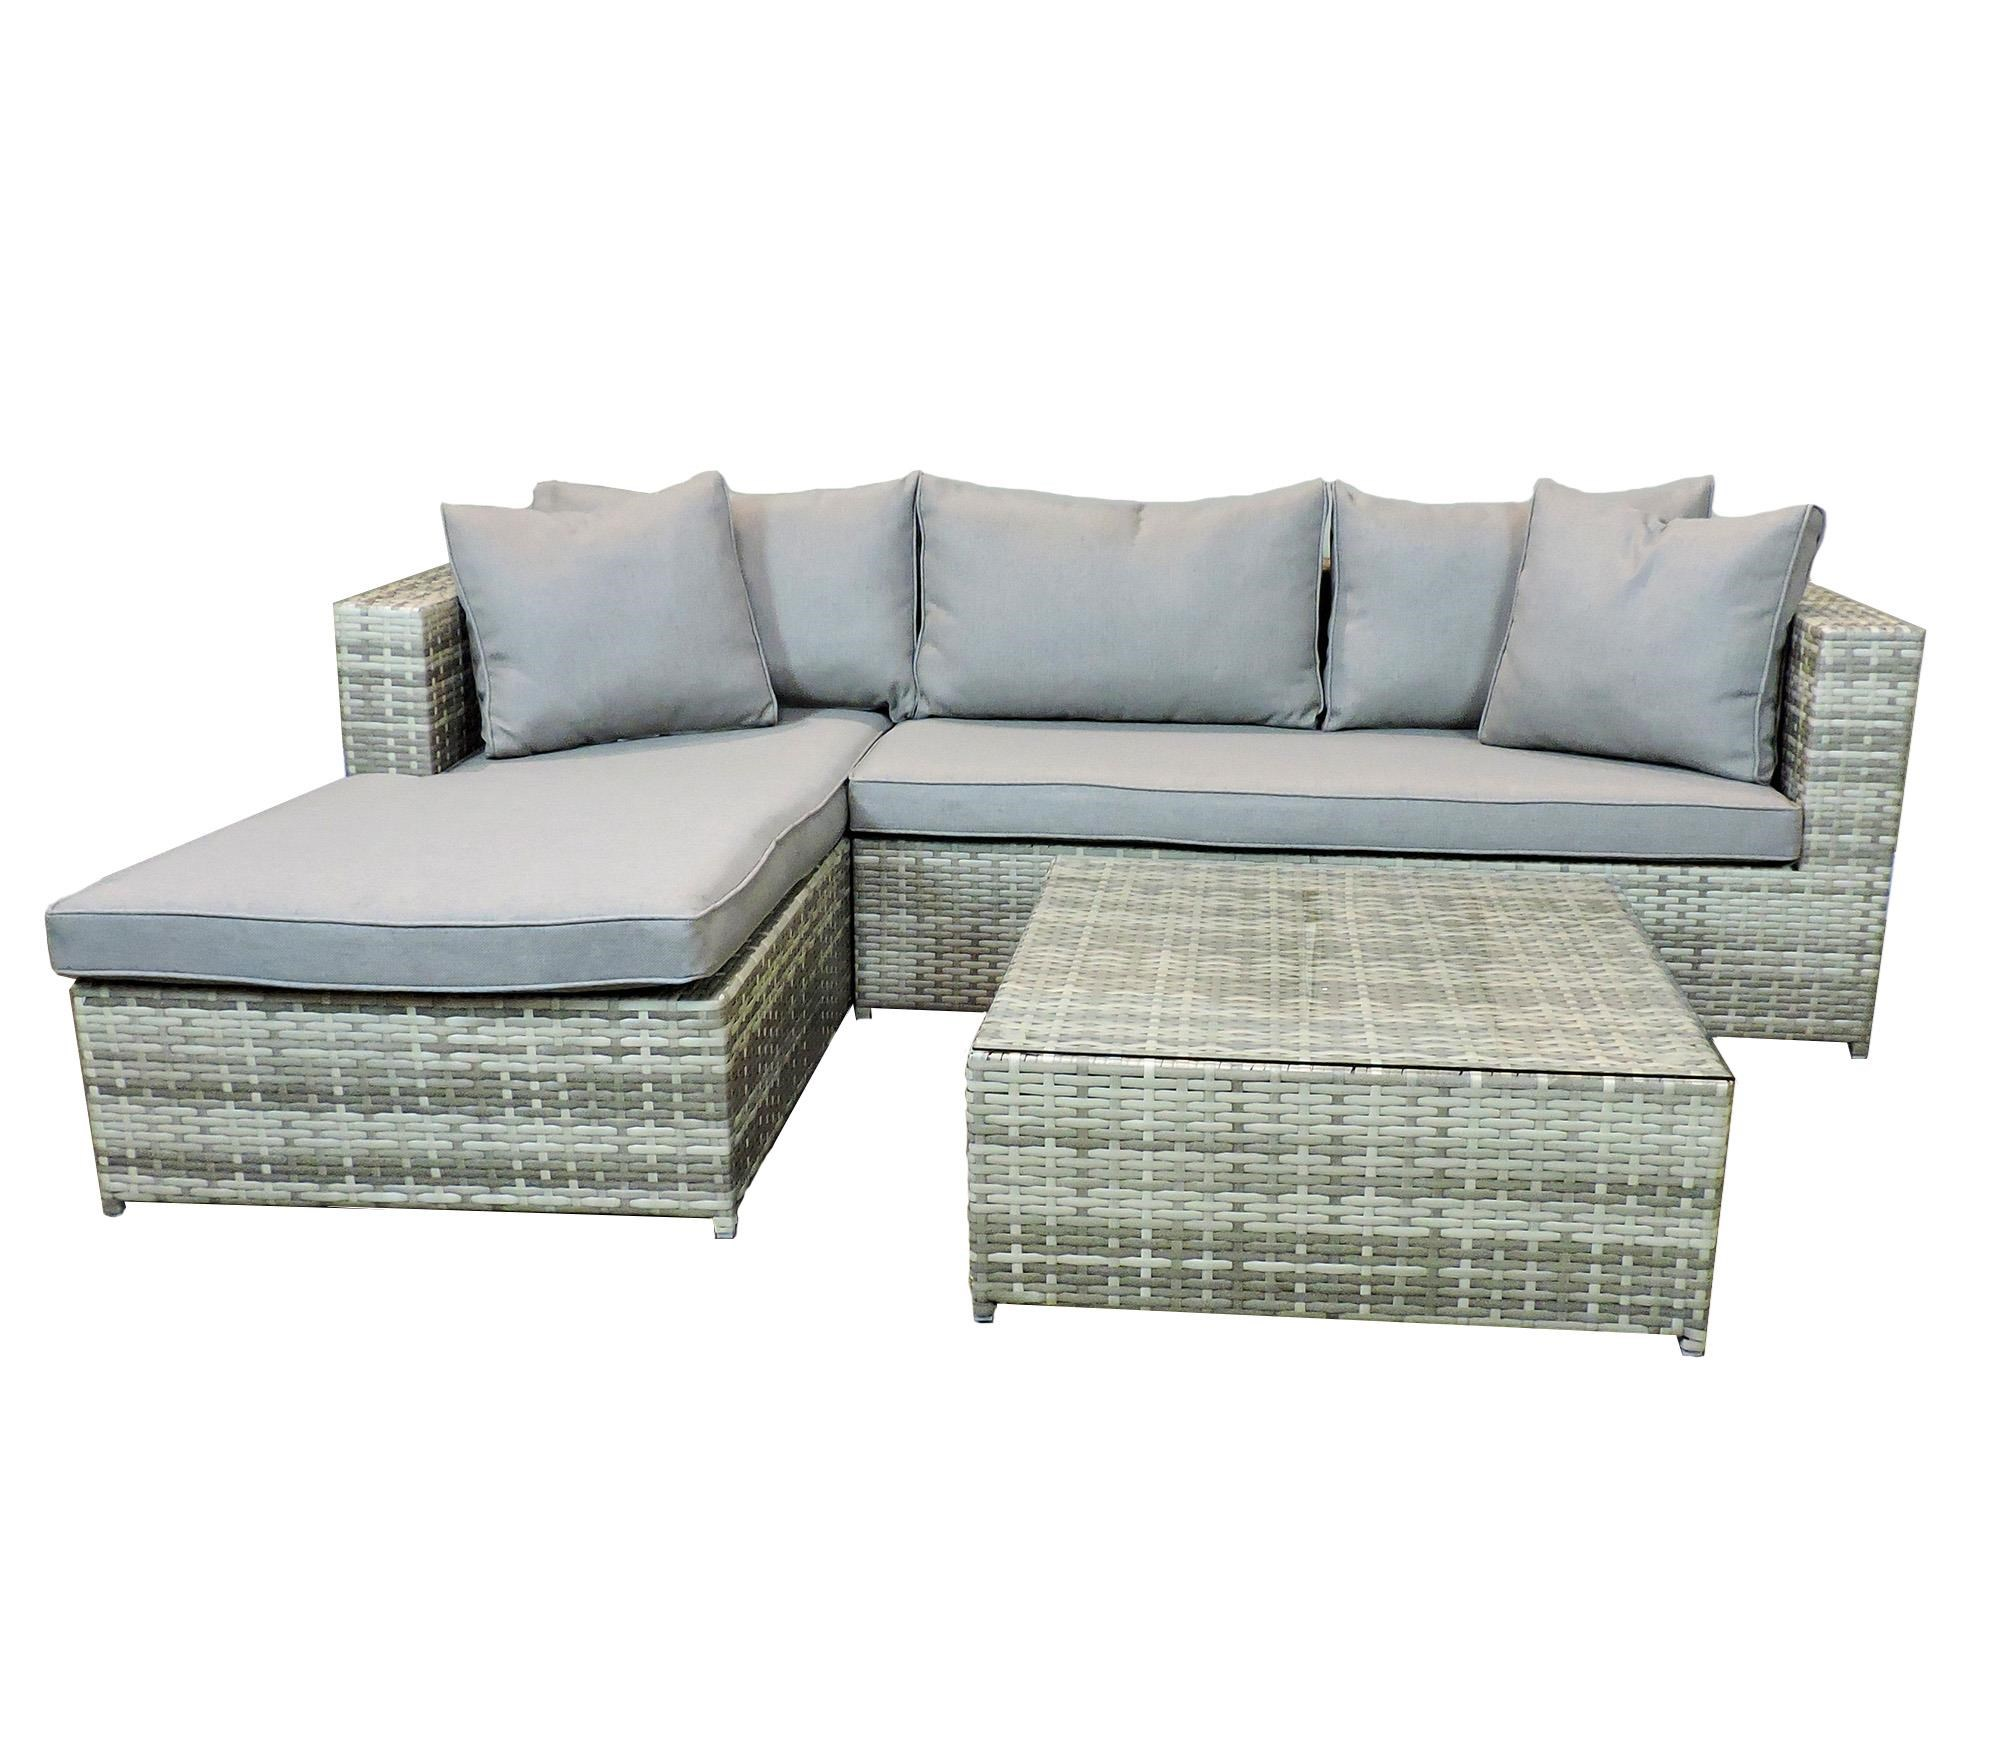 Belfort Essentials Outdoor Palmetto Outdoor Sectional and Ottoman - Item Number: 13C074ASET